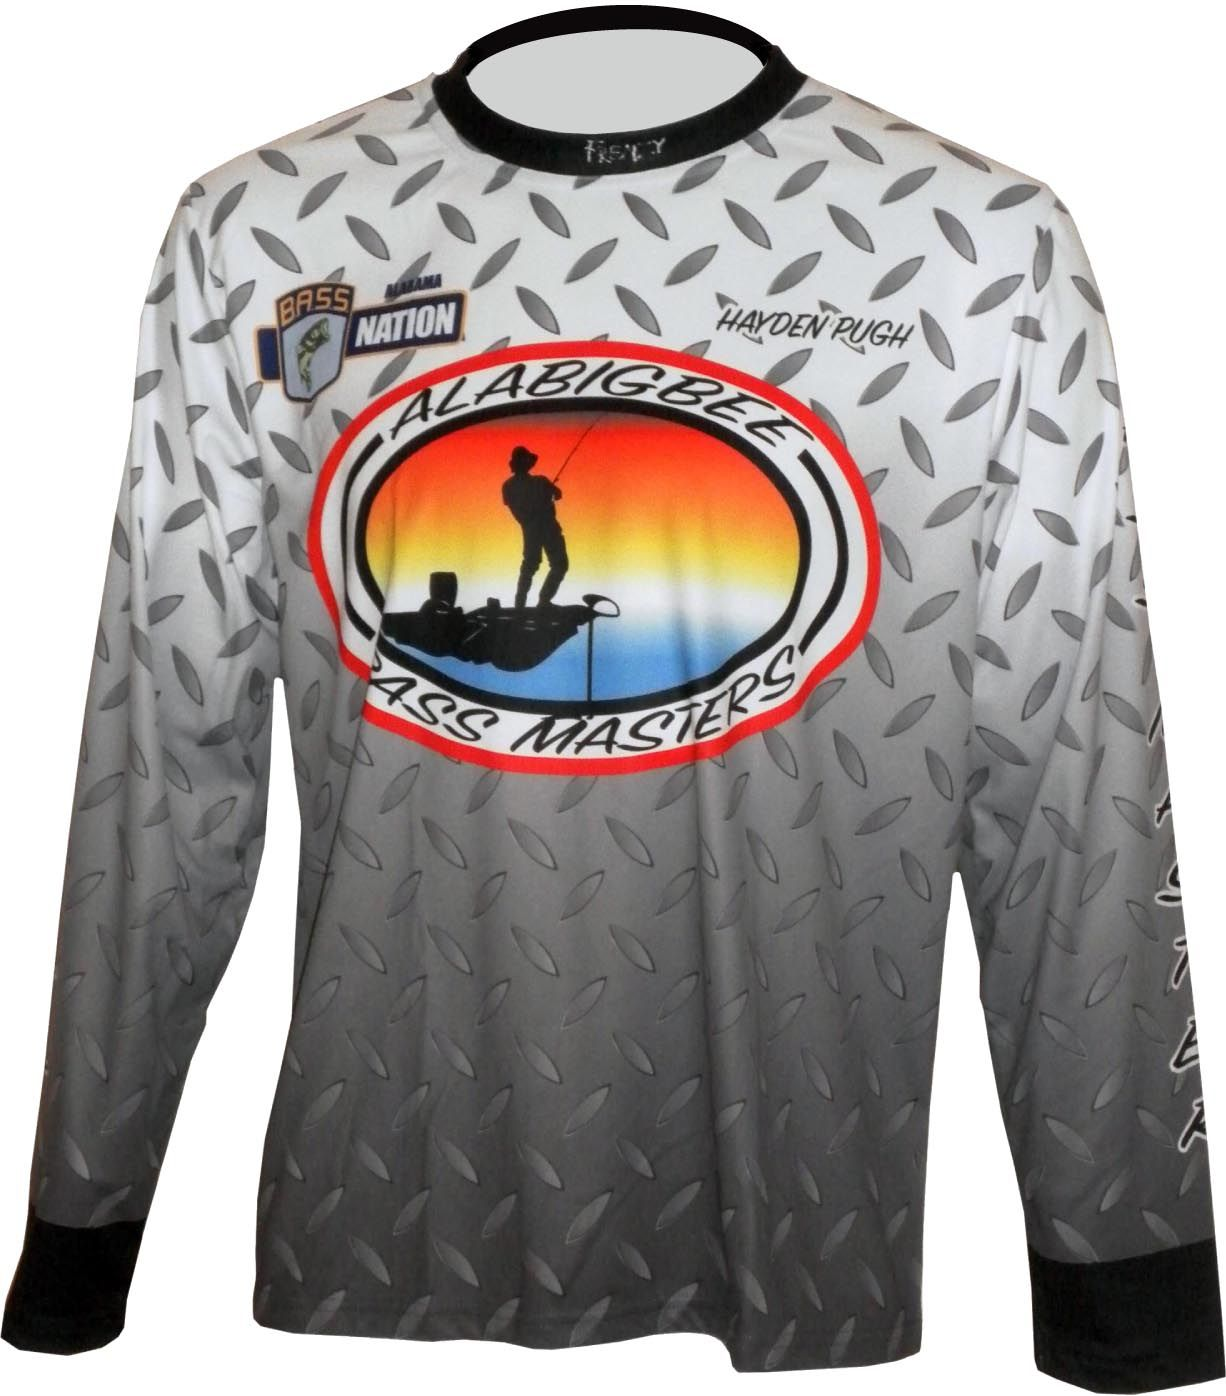 Alabigbee Bass Masters New Tournament Fishing Shirts Have Just Been